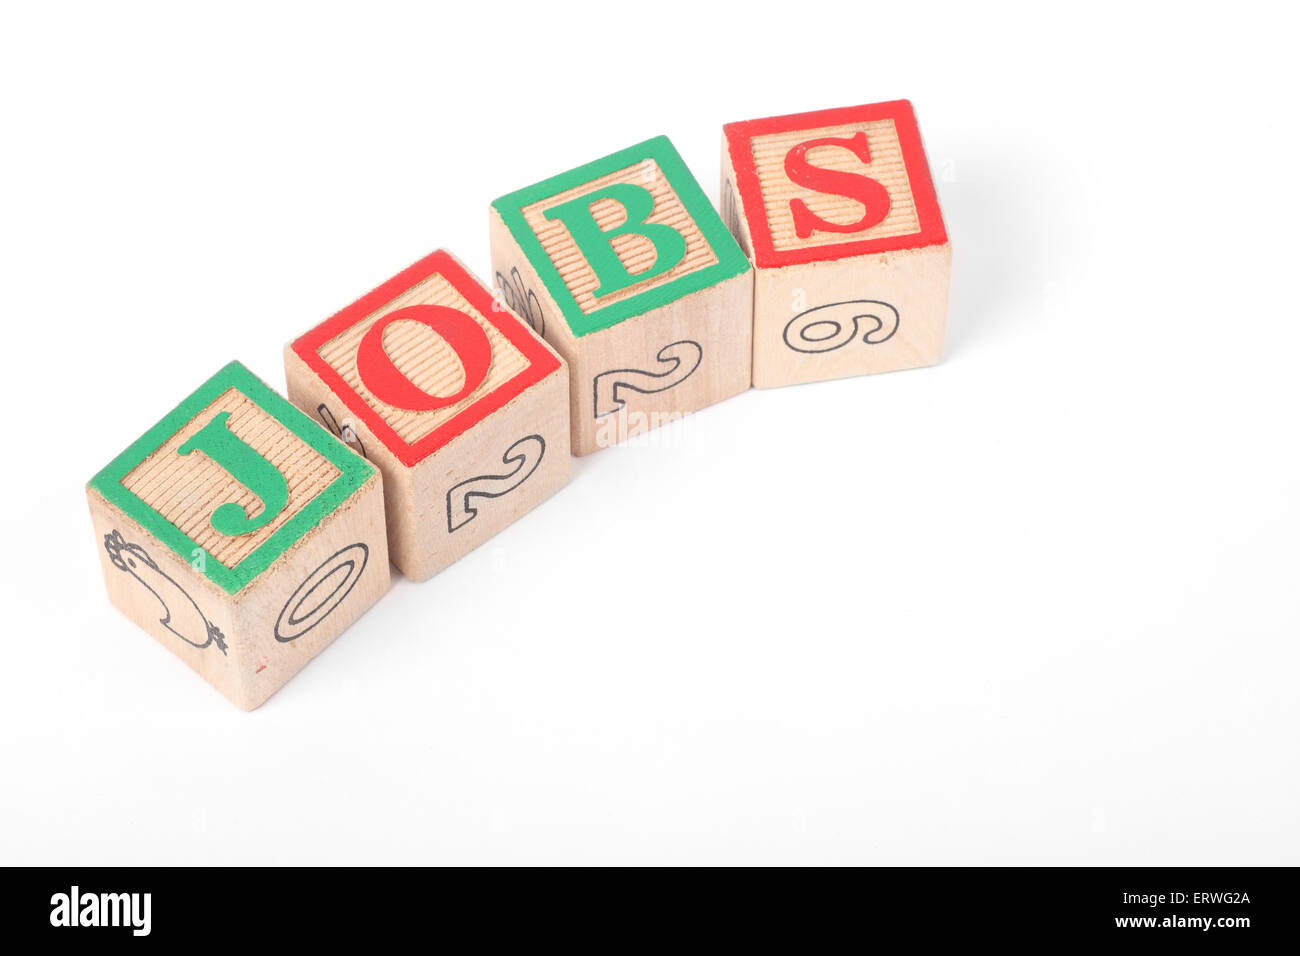 The word 'JOBS' spelt out with Children's building blocls - Stock Image